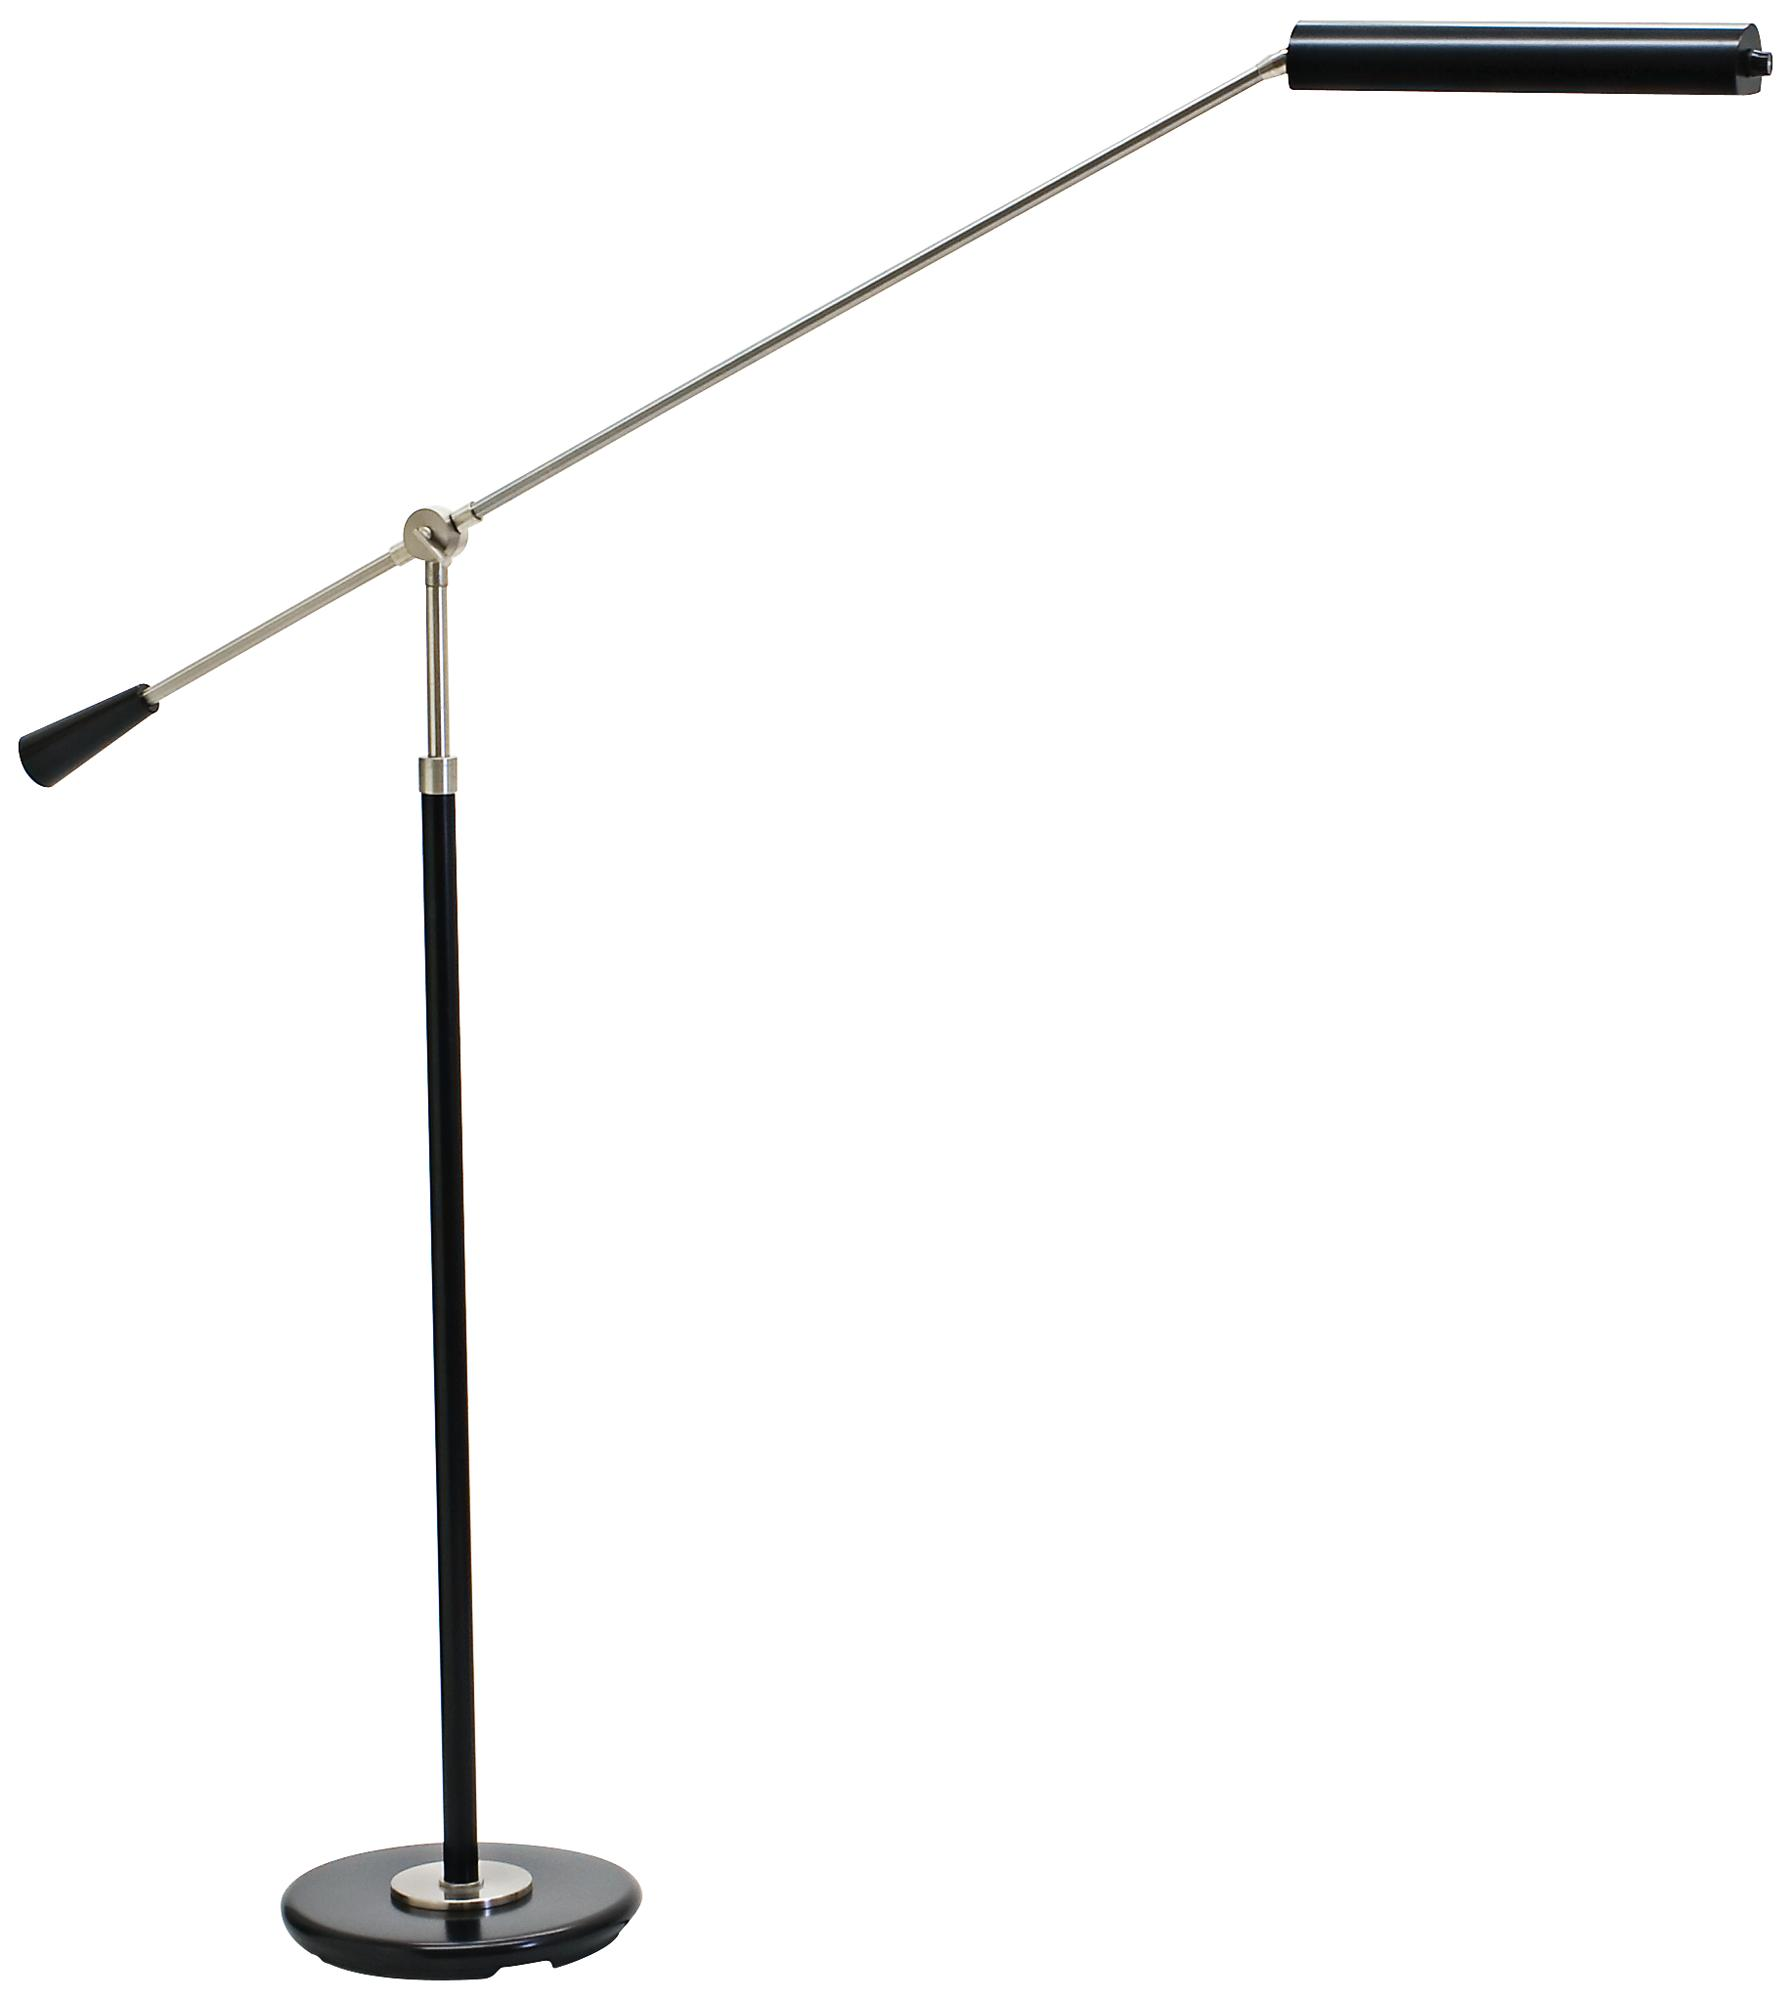 House of Troy Satin Nickel Grand Piano LED Floor Lamp (8Y519)